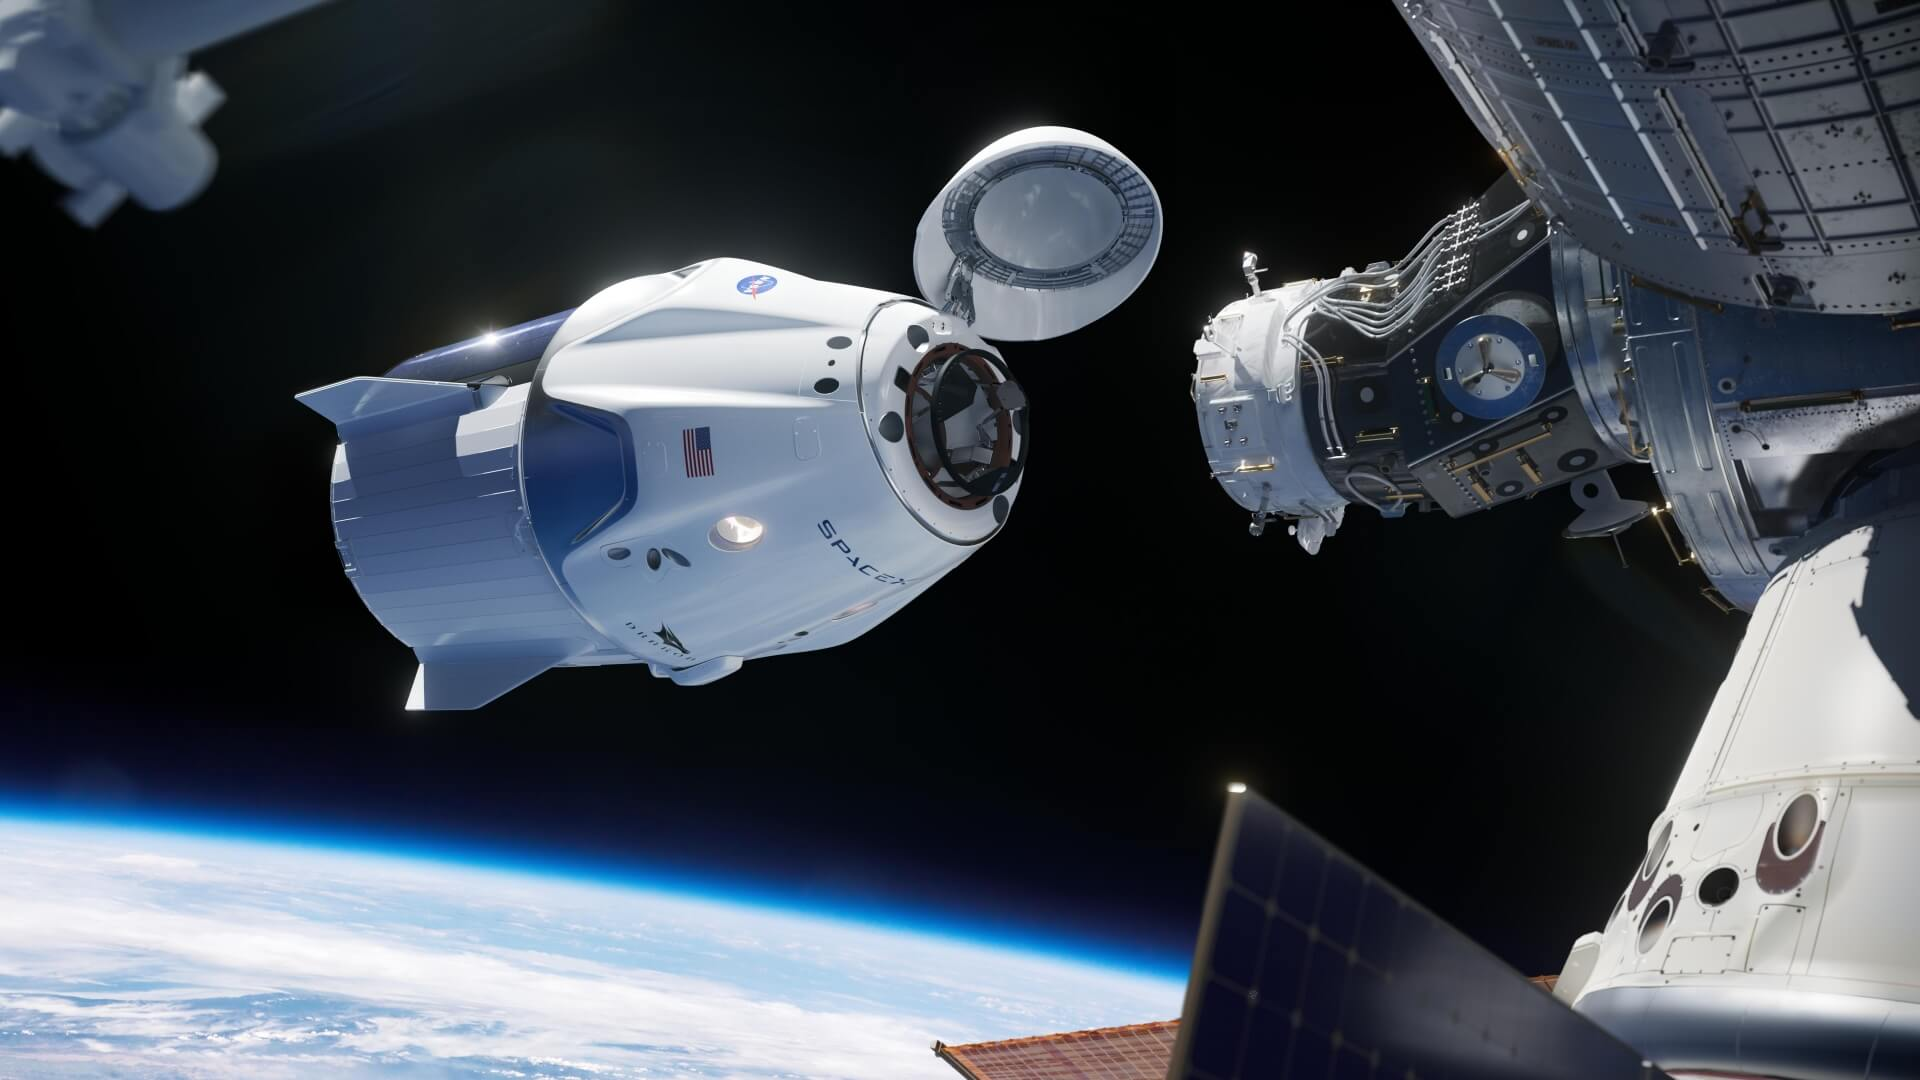 YUZHMASH congratulates SpaceX on the successful launch of the Crew Dragon spacecraft